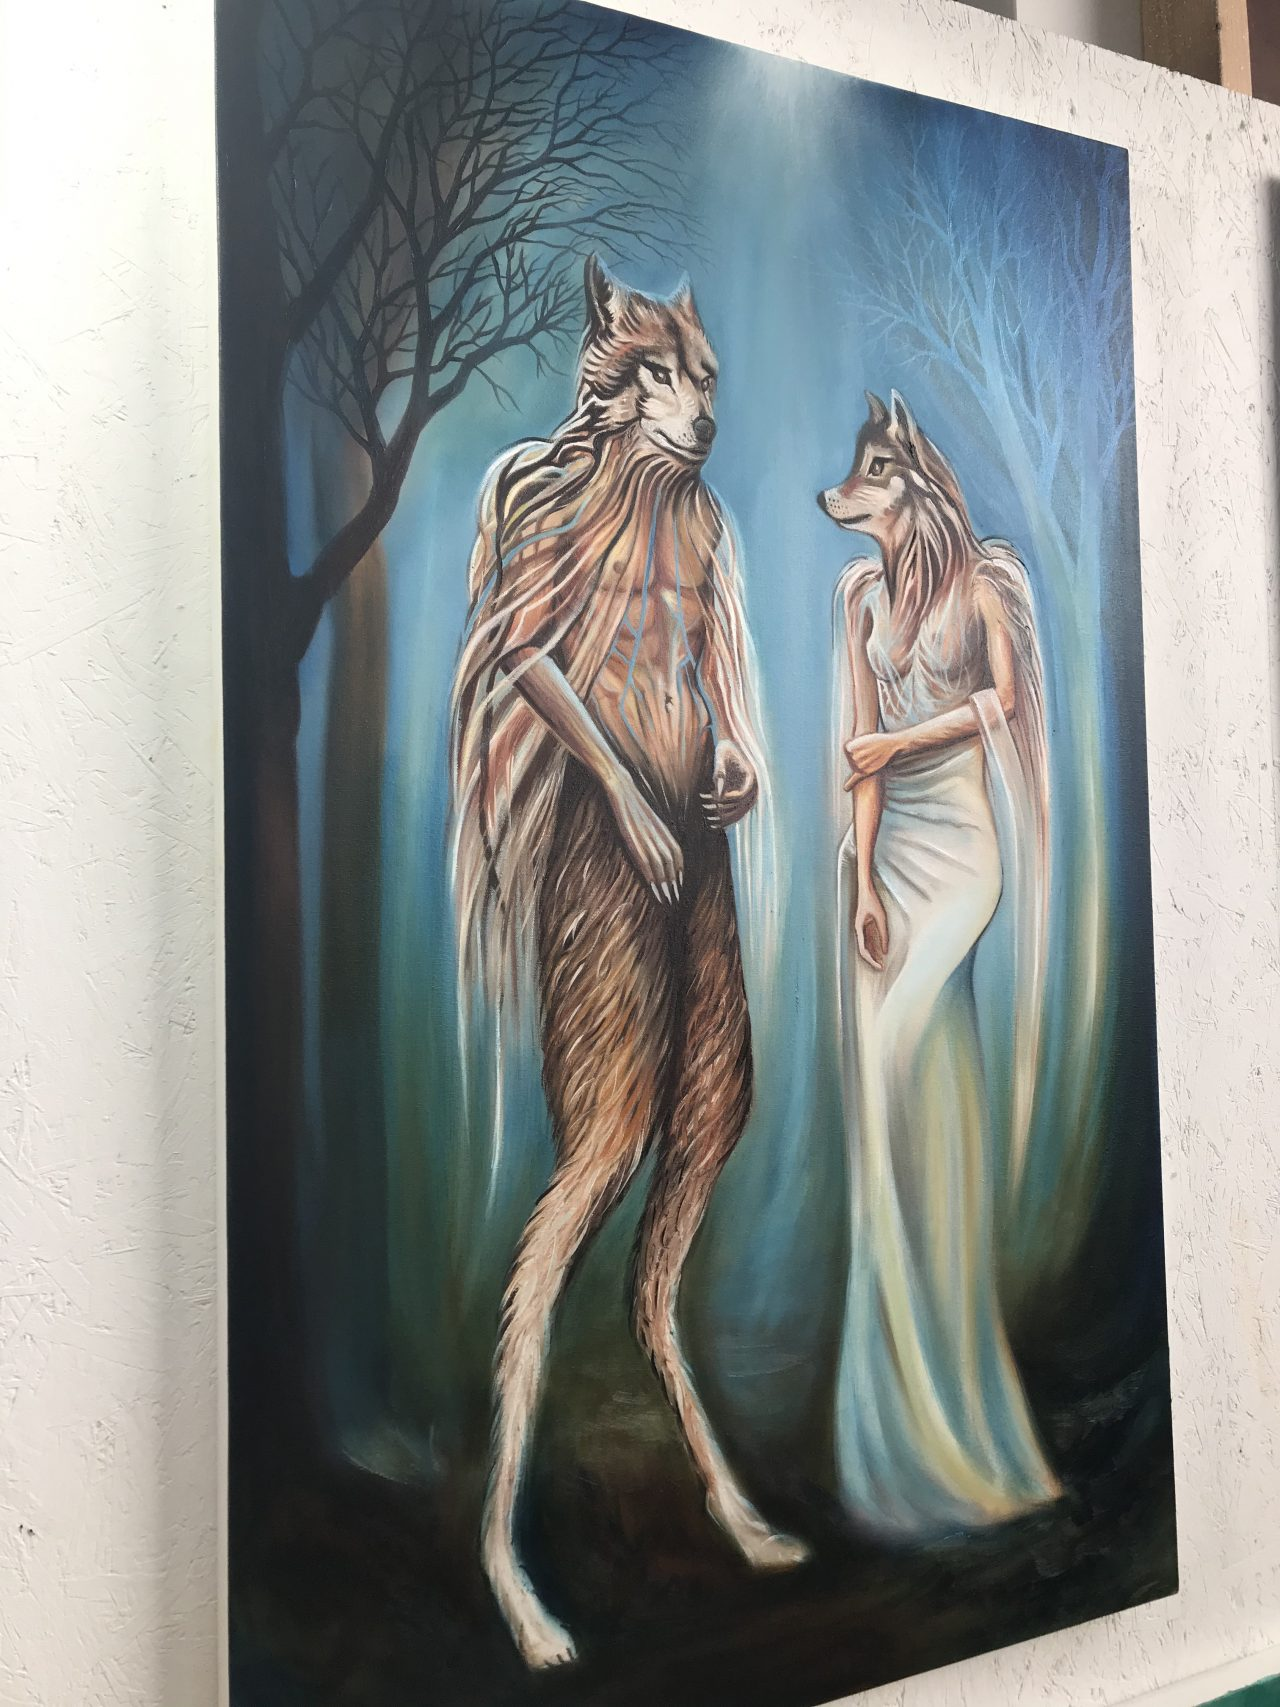 Wolf human hybrid dark fairytale by London based artist